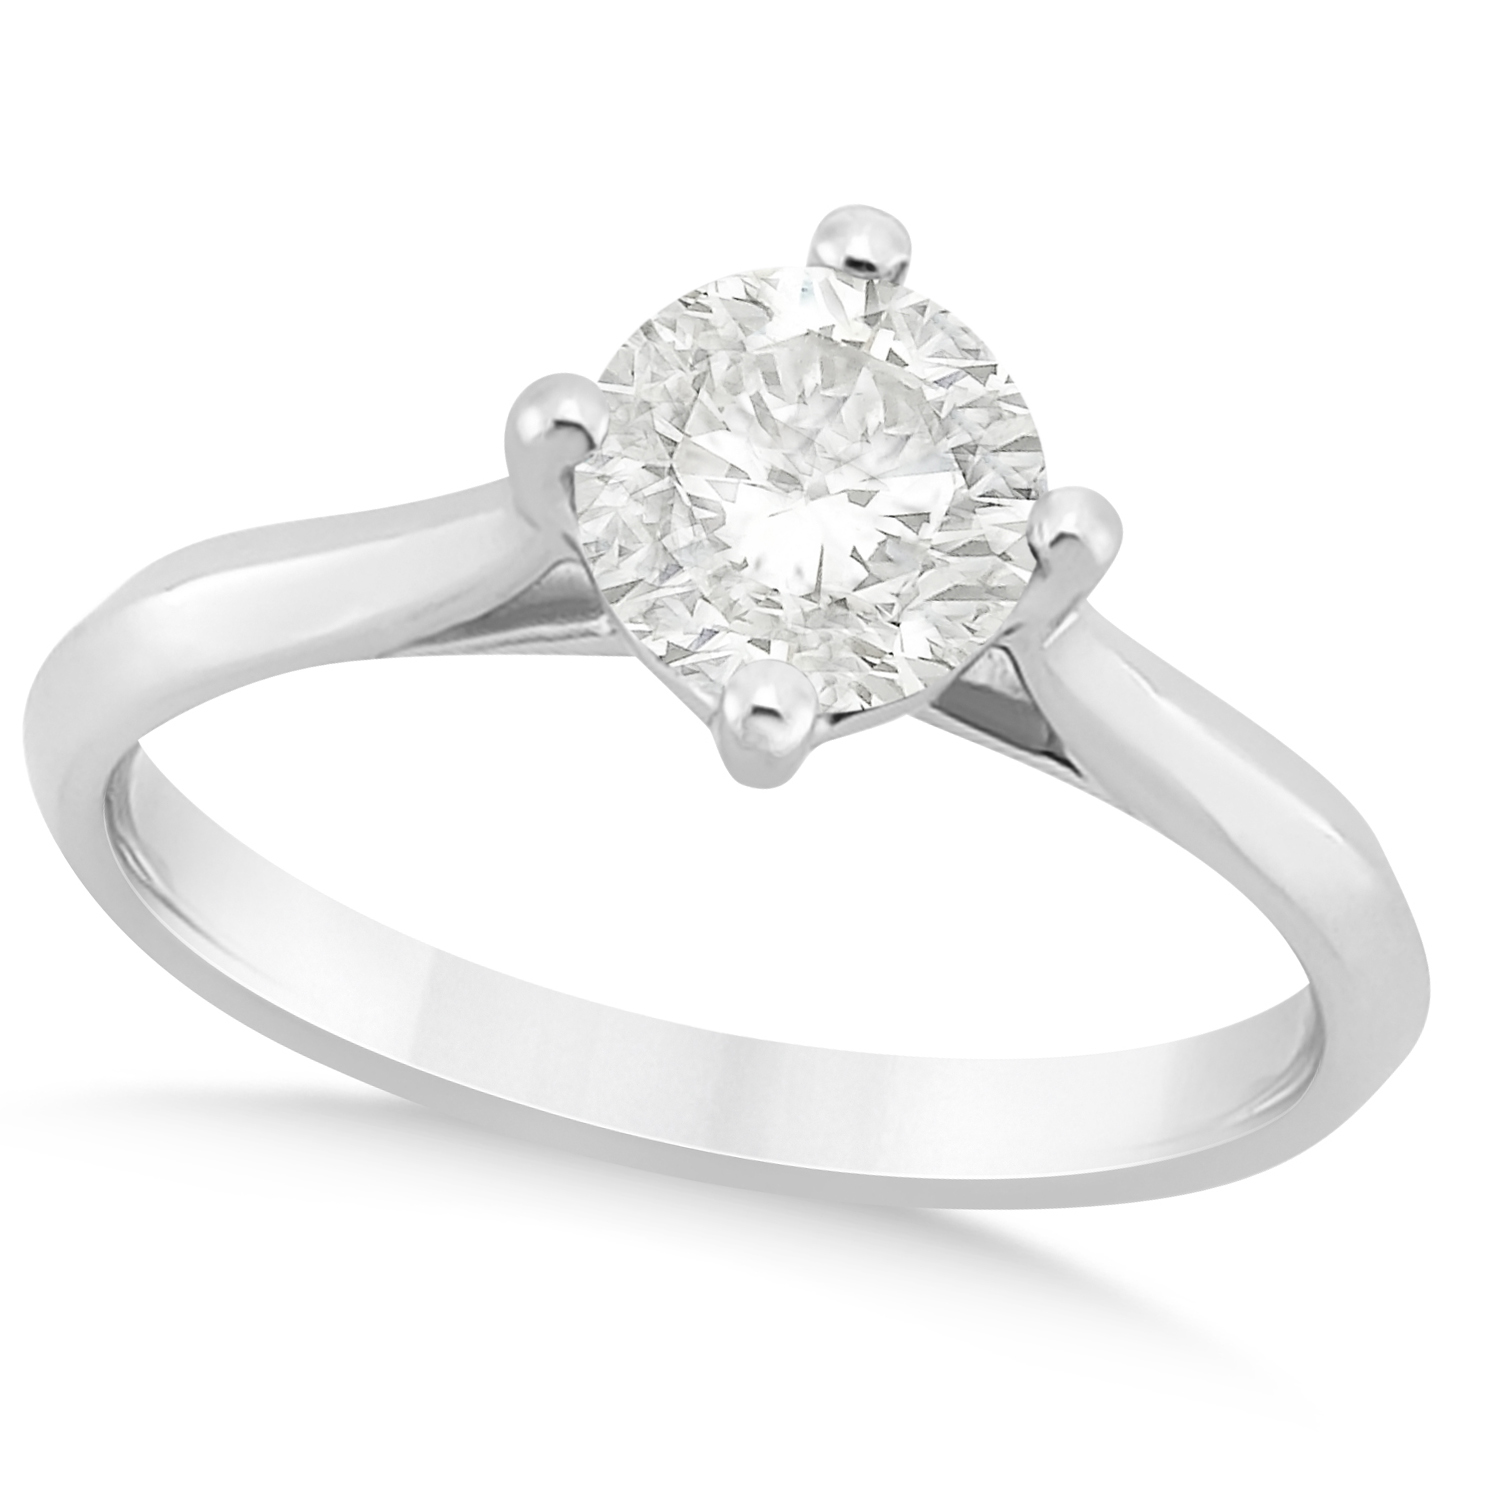 naava diamond ring platinum uk solitaire dp engagement amazon ct white co s gold women marquise jewellery gjfwasl